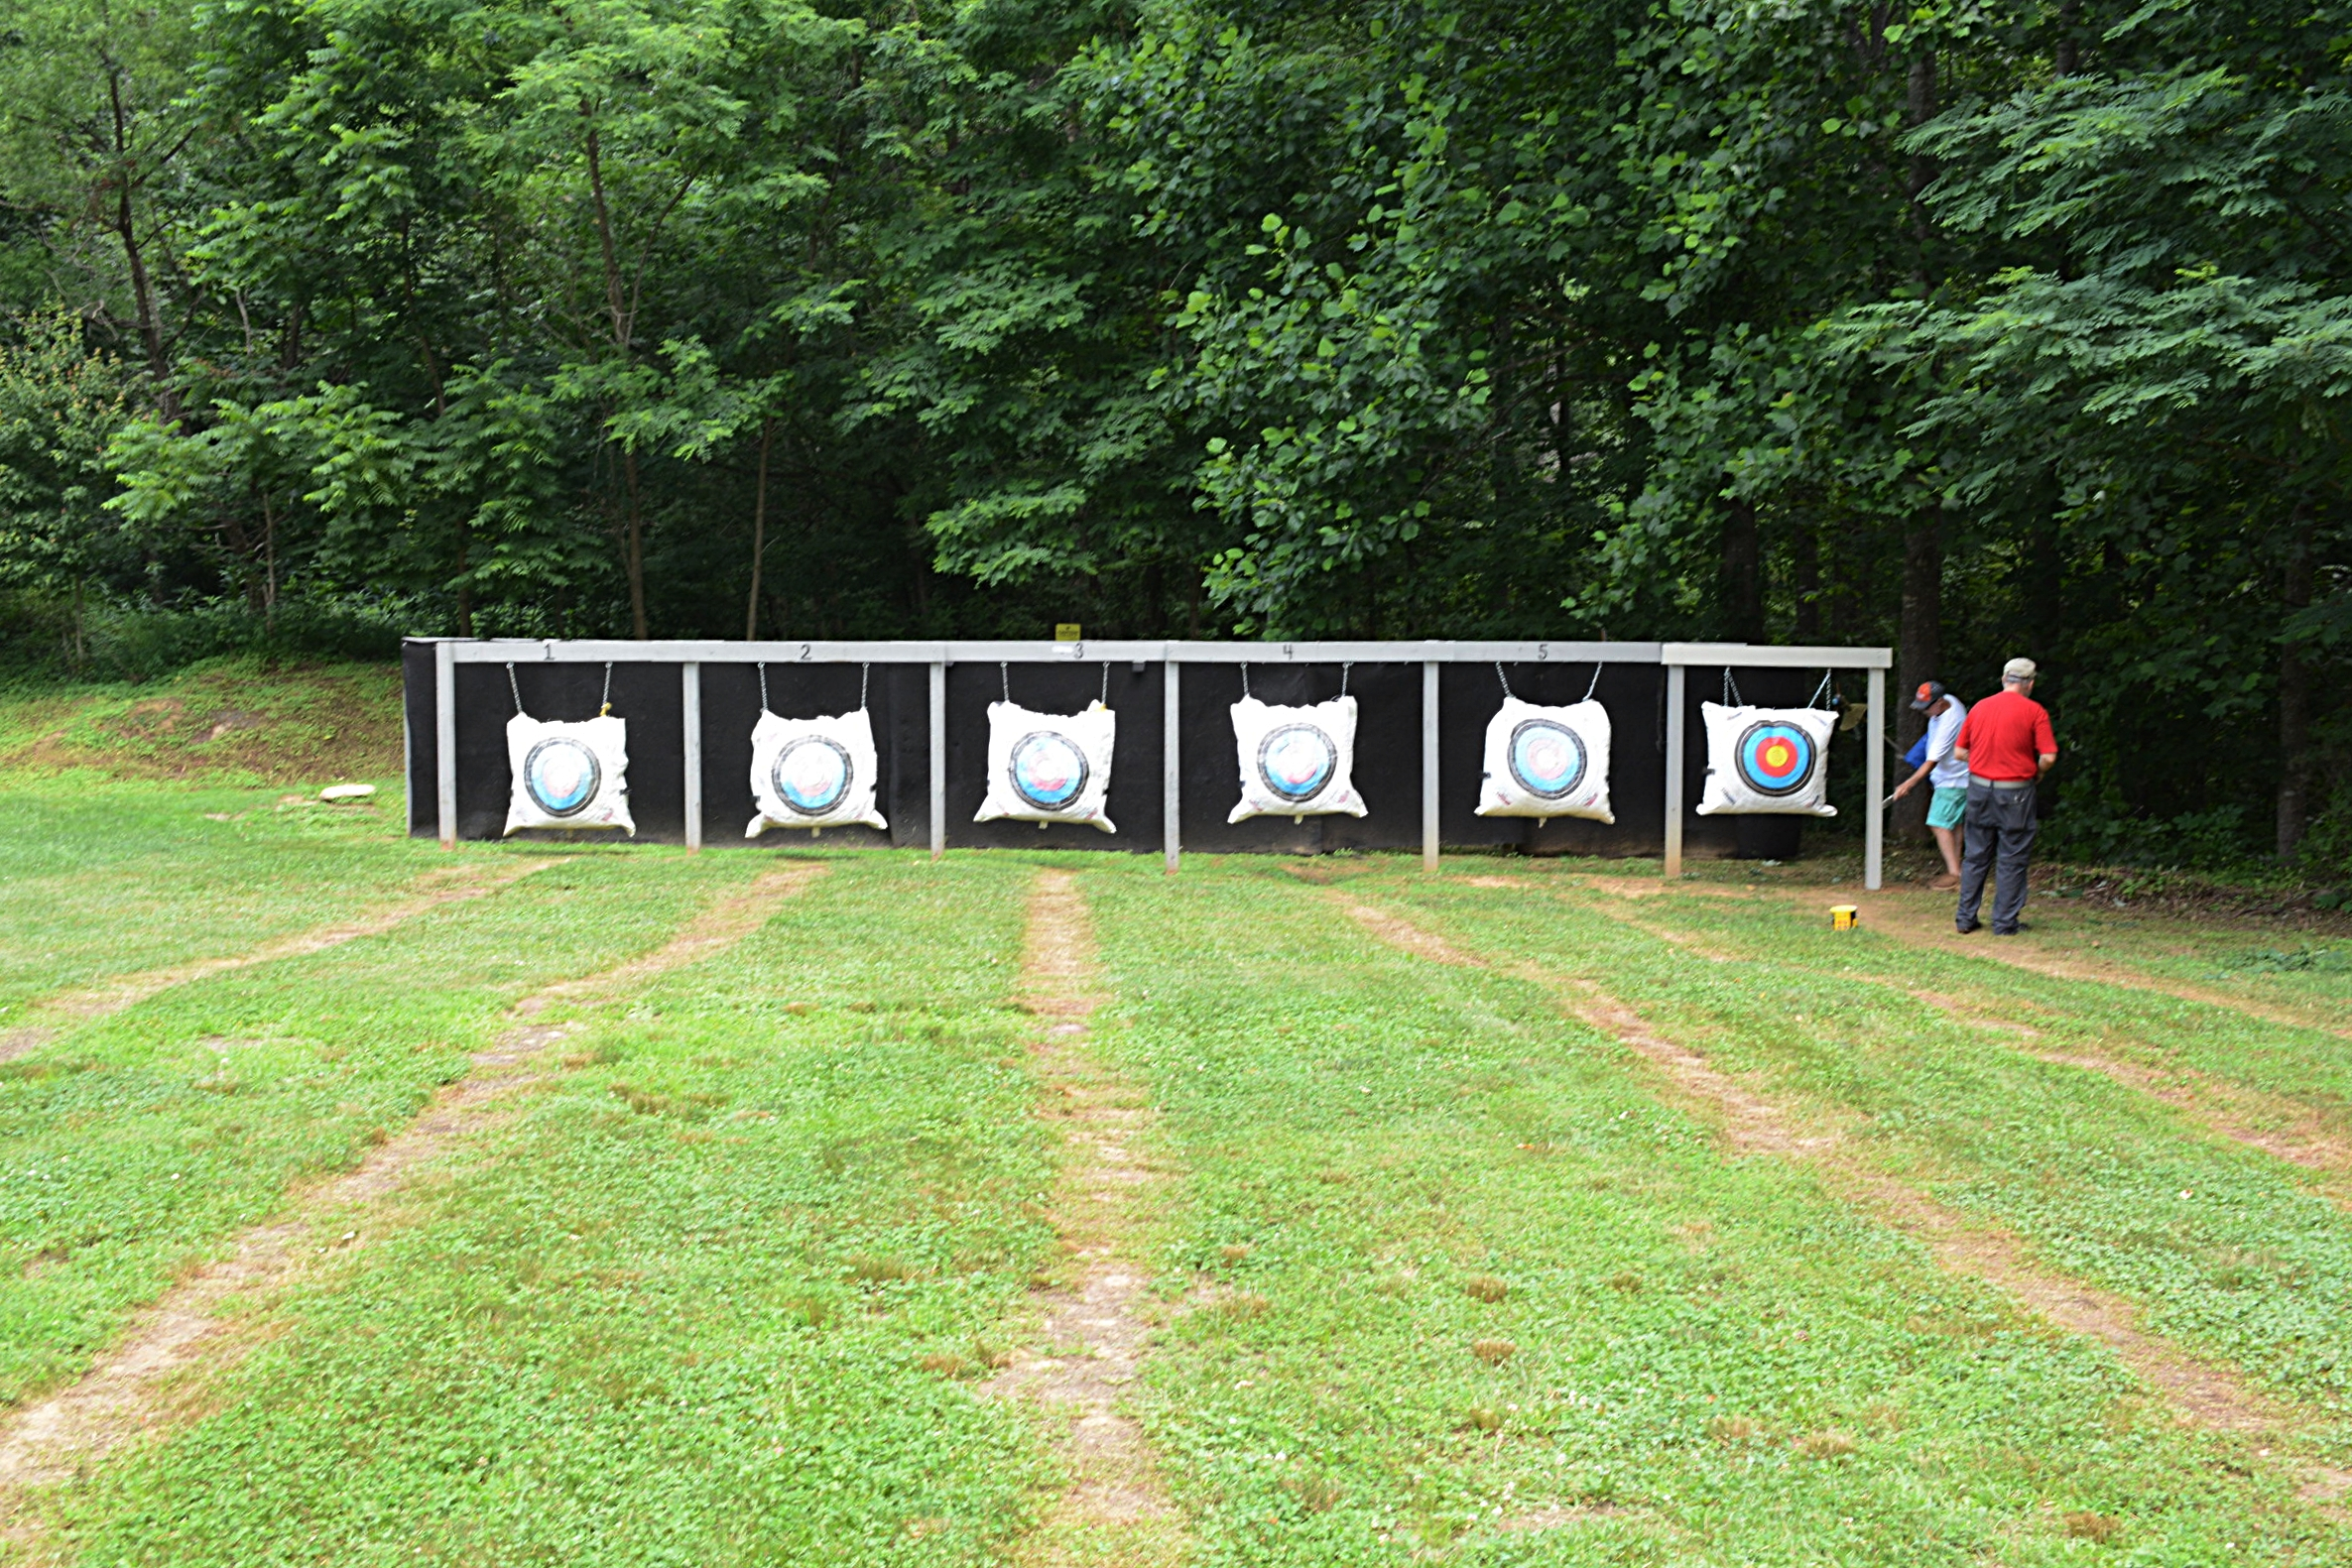 The Rodes Farm Archery Range now has six targets.